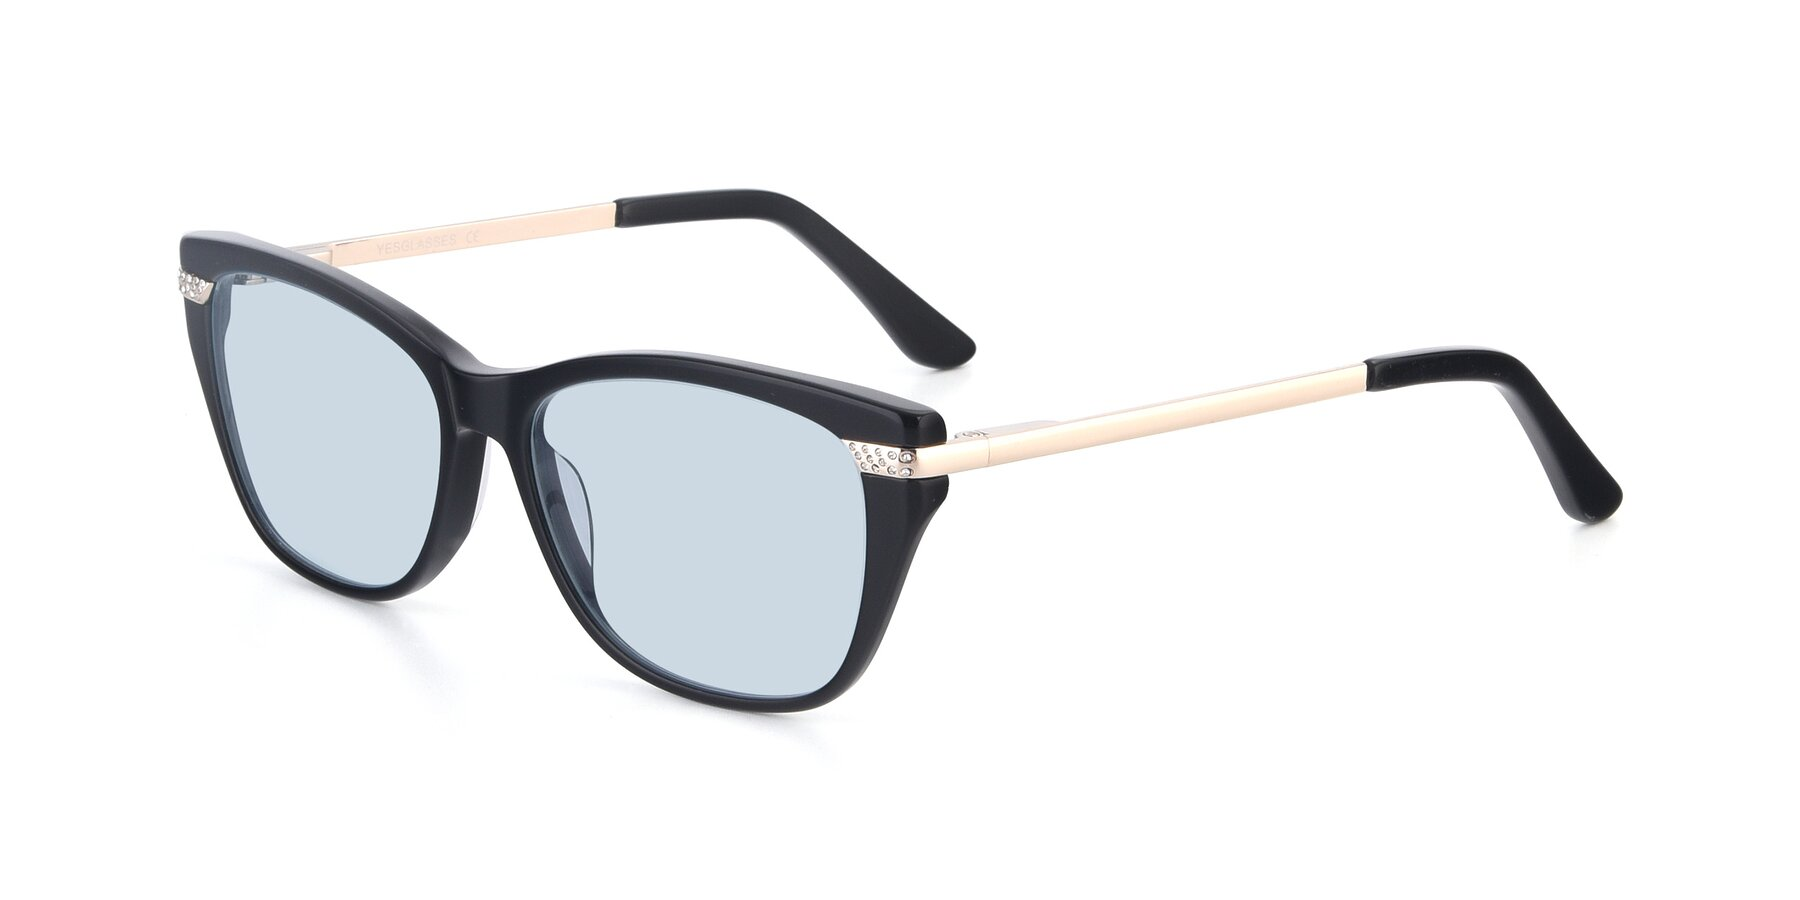 Angle of 17515 in Black with Light Blue Tinted Lenses